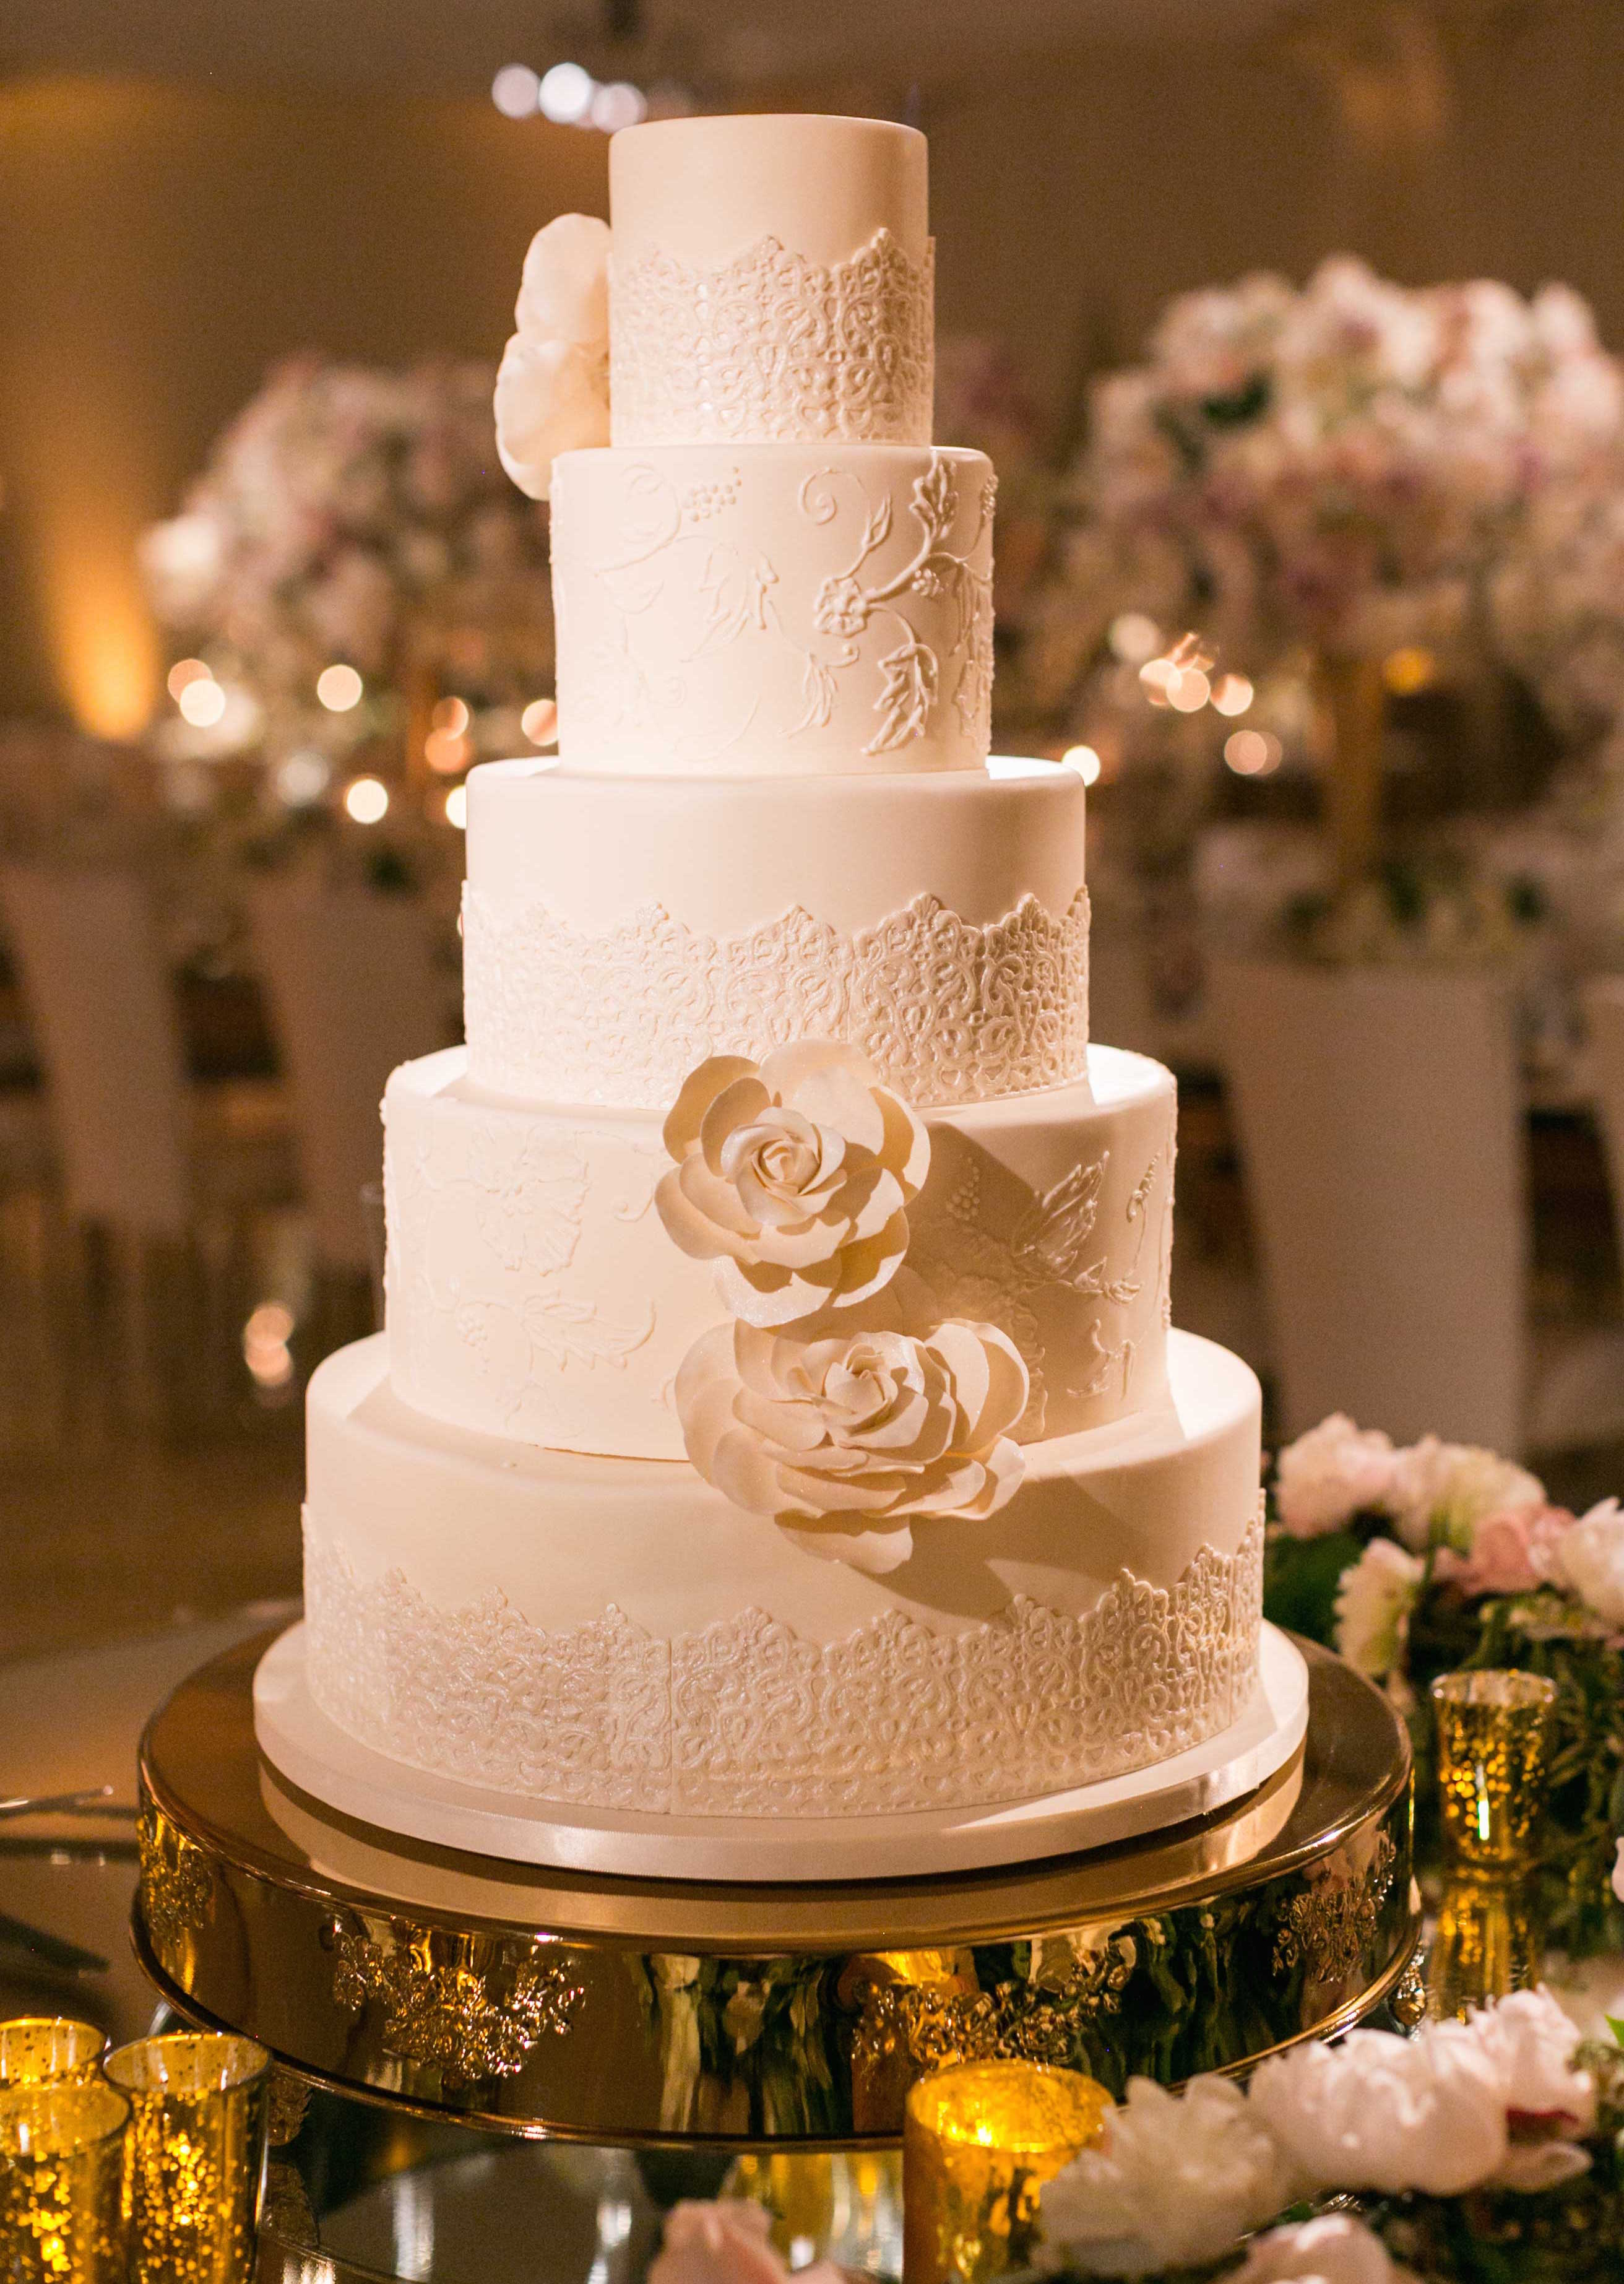 Tall white wedding cake with lace pattern and sugar flowers